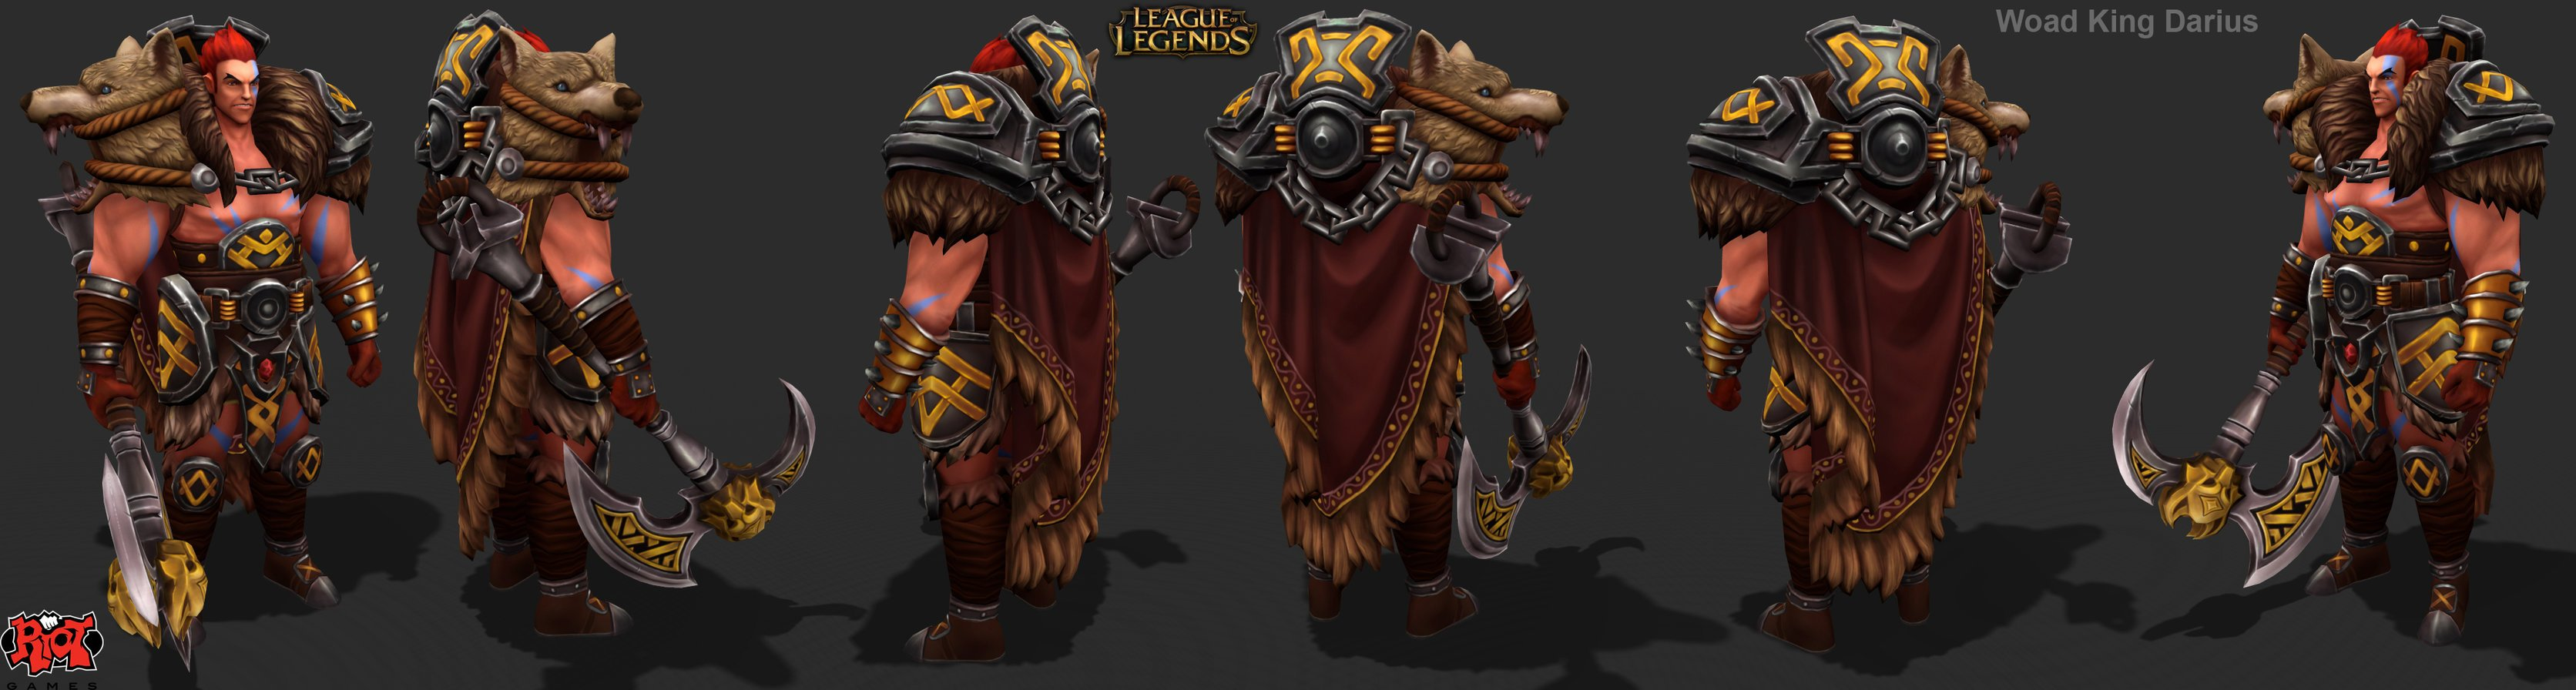 Riot Creative Contest 2017 Character Art Woad King Darius Polycount